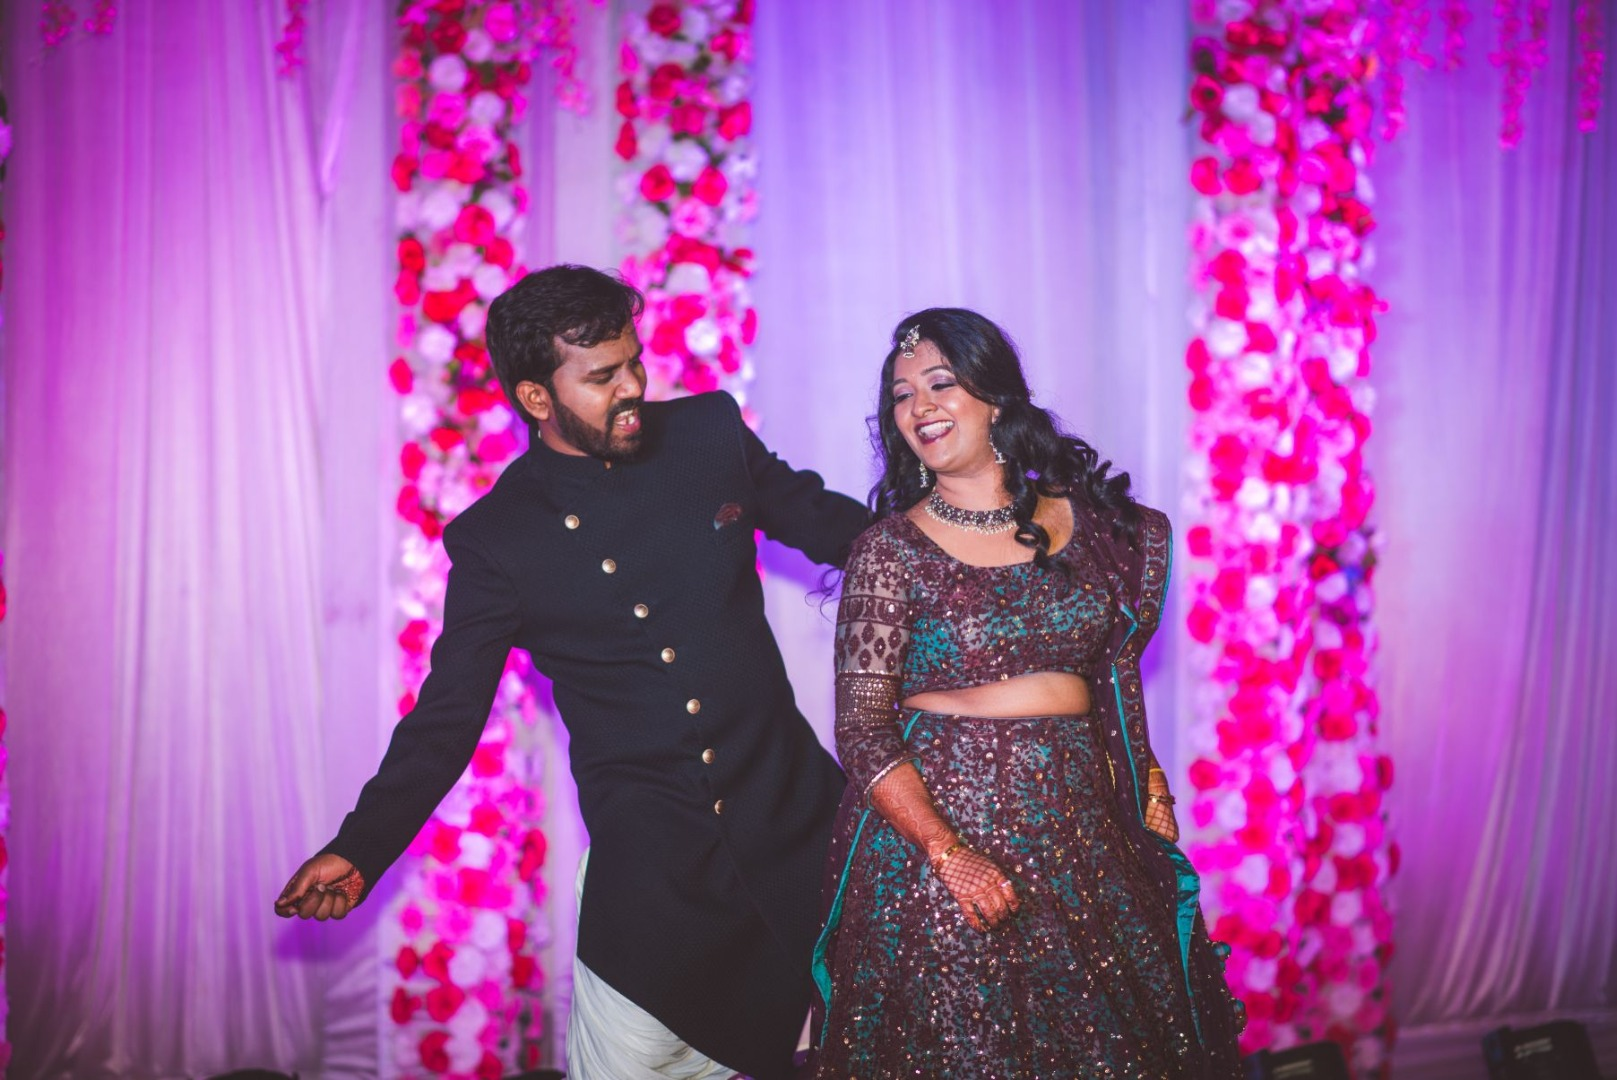 Dancing Bride & Groom in Coordinated Outfits and Pink Theme Floral Stage Decor